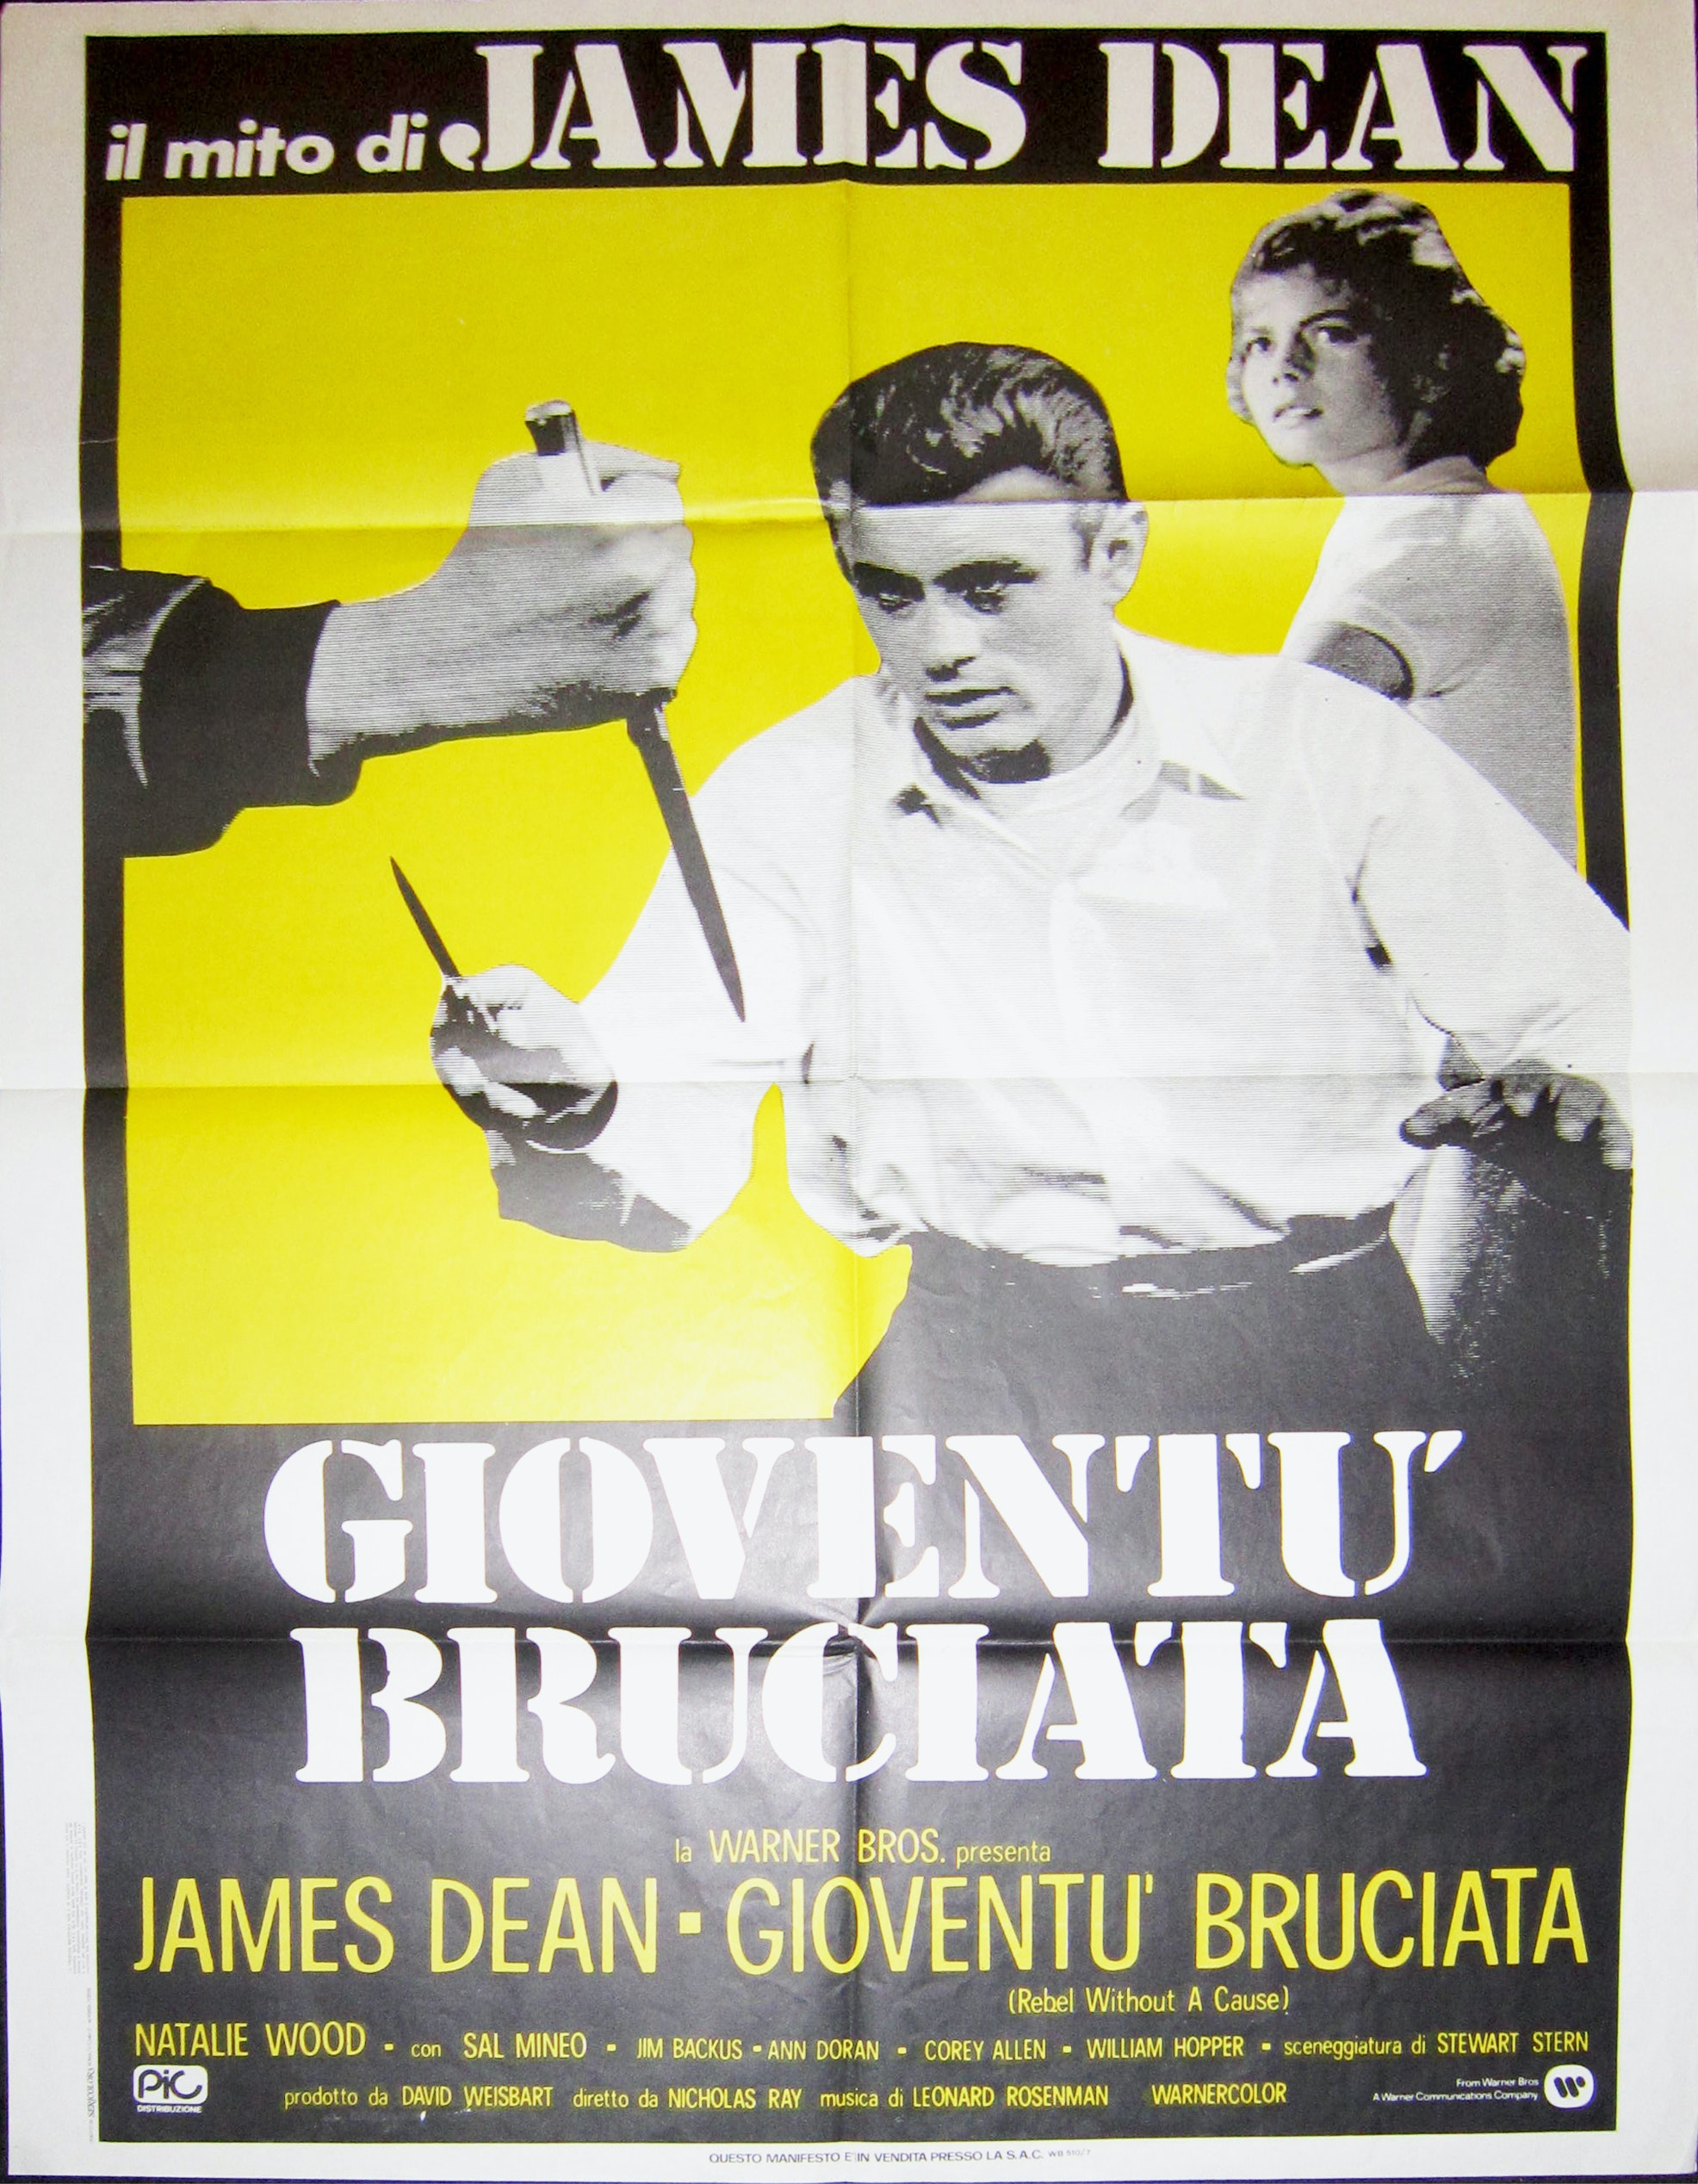 Rebel Without a Cause Vintage Italian Movie Poster